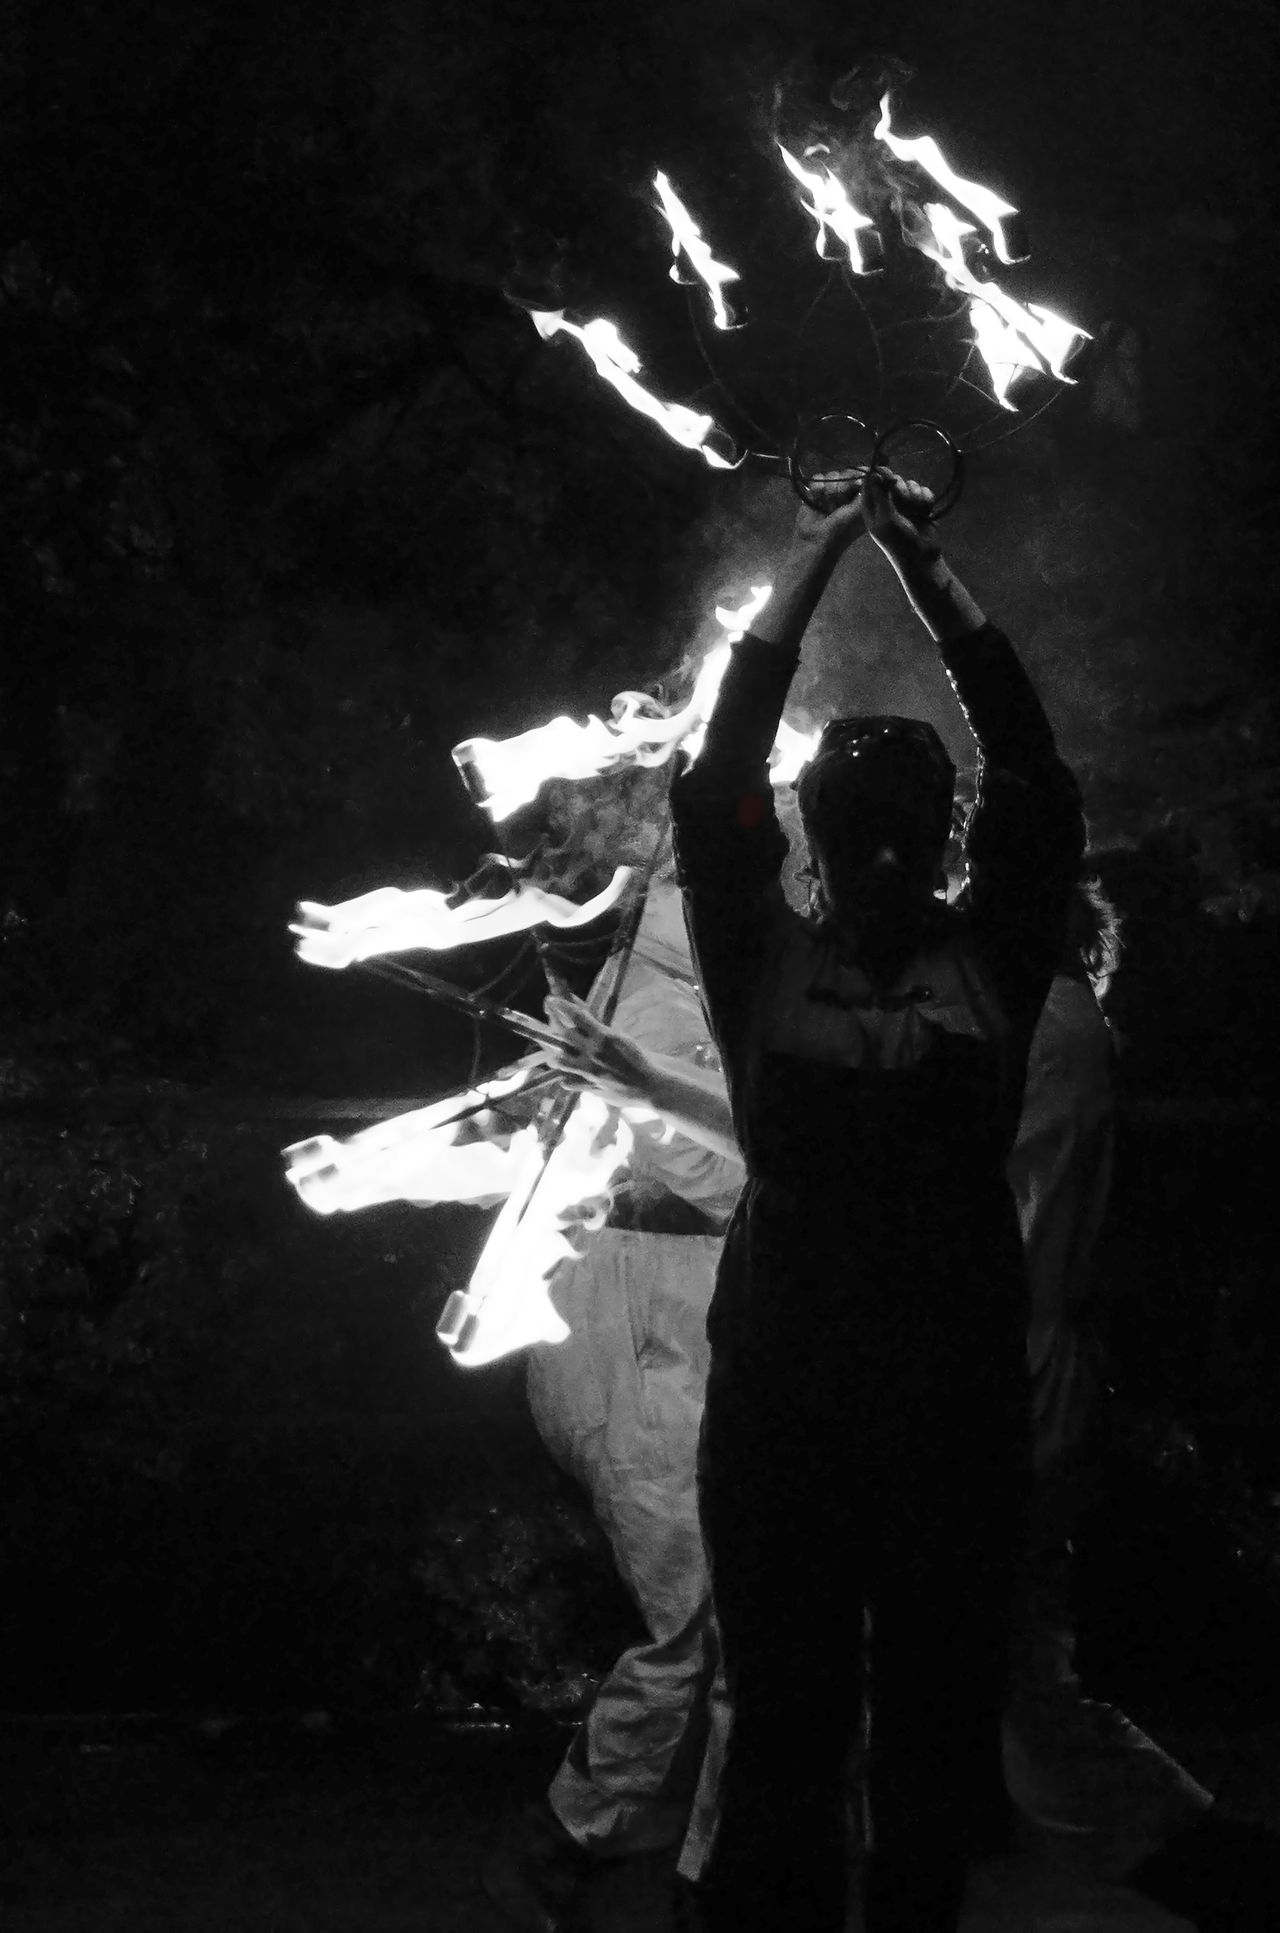 Black And White Botanical Gardens Burning Dance Darkness Dramatic Fire Flame Glasgow  Group Intense Lux Botanicum Monochrome Night Outdoors Perfom Performer  Portrait Silhouette Torce Unrecognizable Person